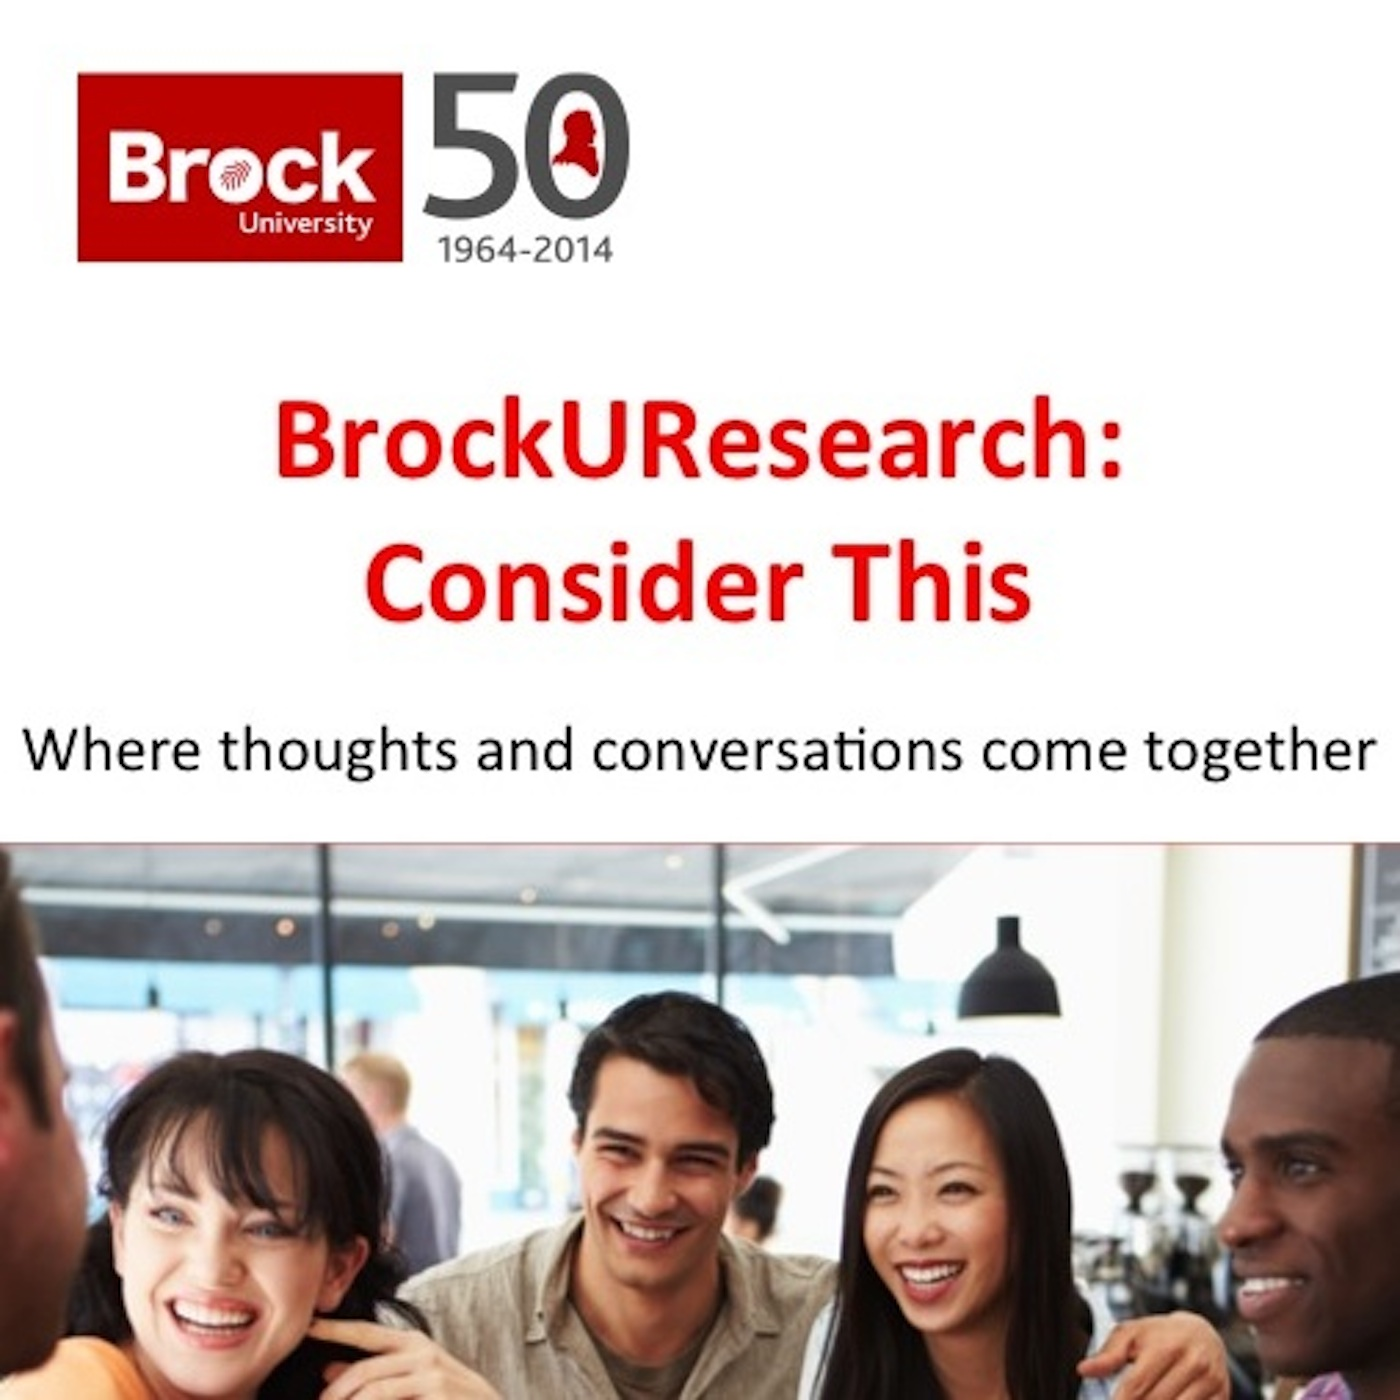 BrockUResearch: Consider This